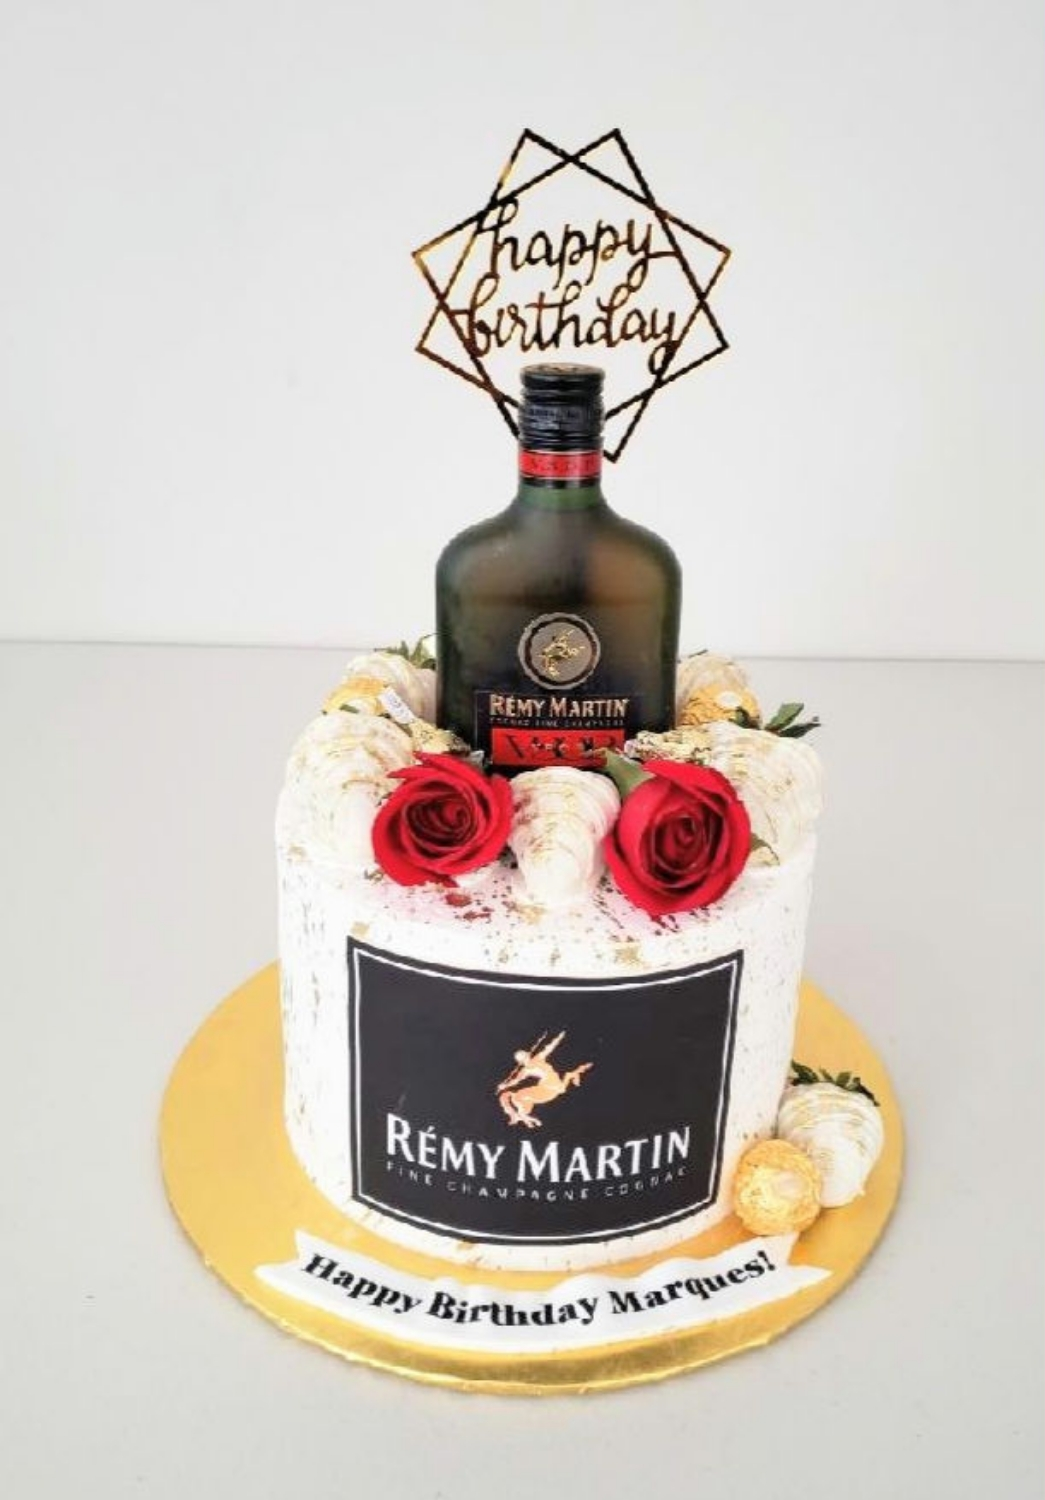 Remy Martin Adult Beverage Cake